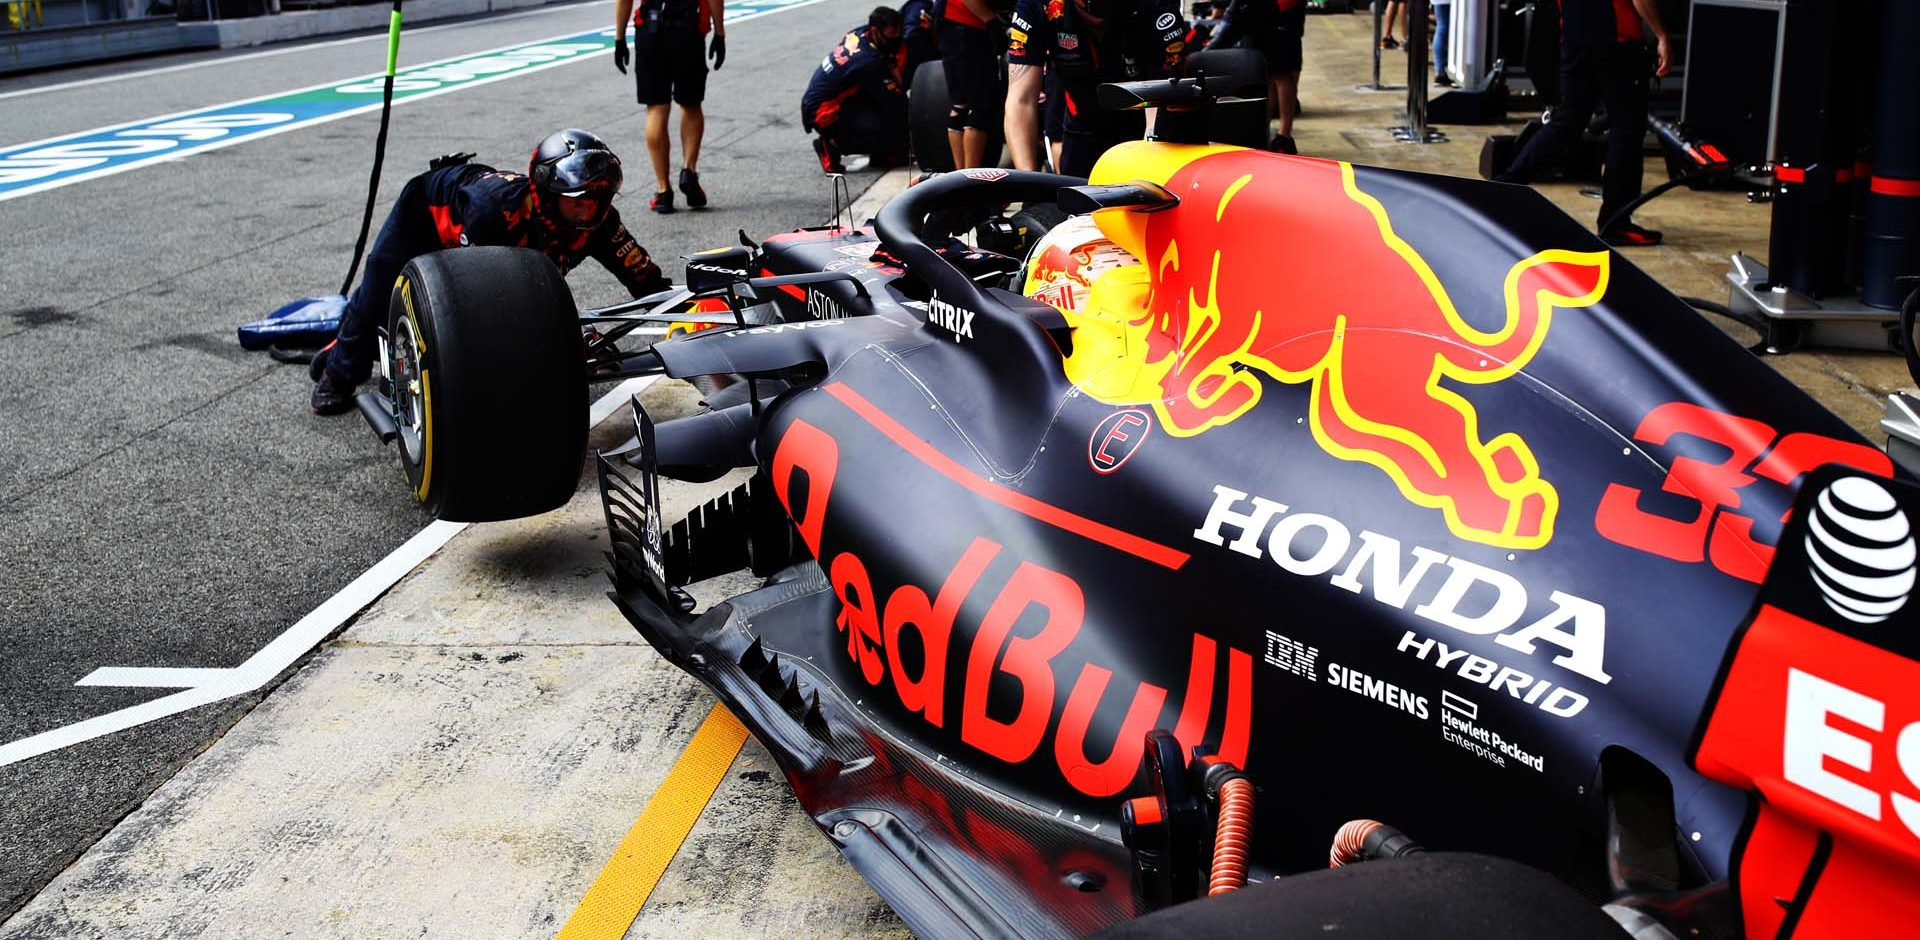 BARCELONA, SPAIN - AUGUST 14: Max Verstappen of the Netherlands driving the (33) Aston Martin Red Bull Racing RB16 is pushed back into the garage during practice for the F1 Grand Prix of Spain at Circuit de Barcelona-Catalunya on August 14, 2020 in Barcelona, Spain. (Photo by Mark Thompson/Getty Images)